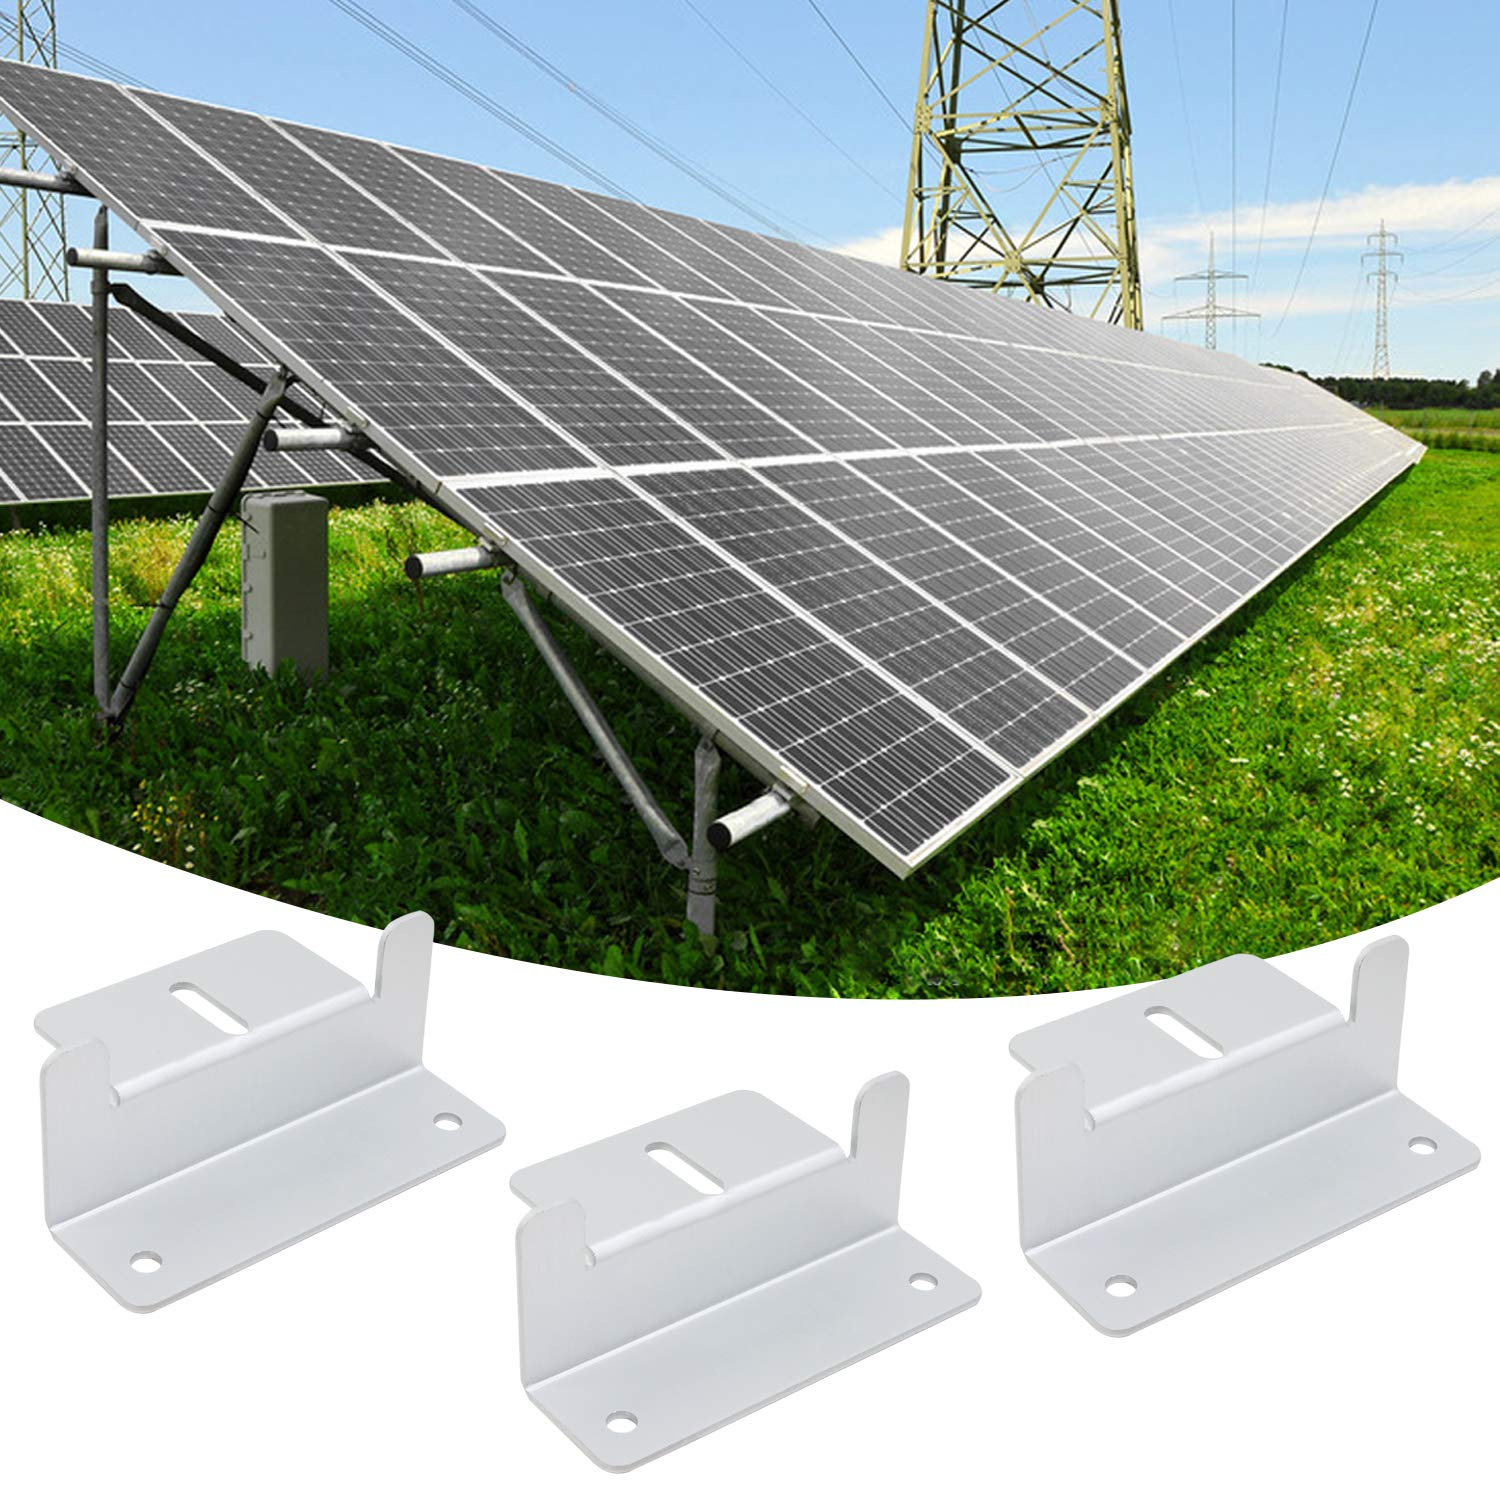 OCR Solar Panel Z-Brackets Solar Panel Mount Supporting Bracket Z Style with Nuts and Bolts,50mm Width 4 Sets